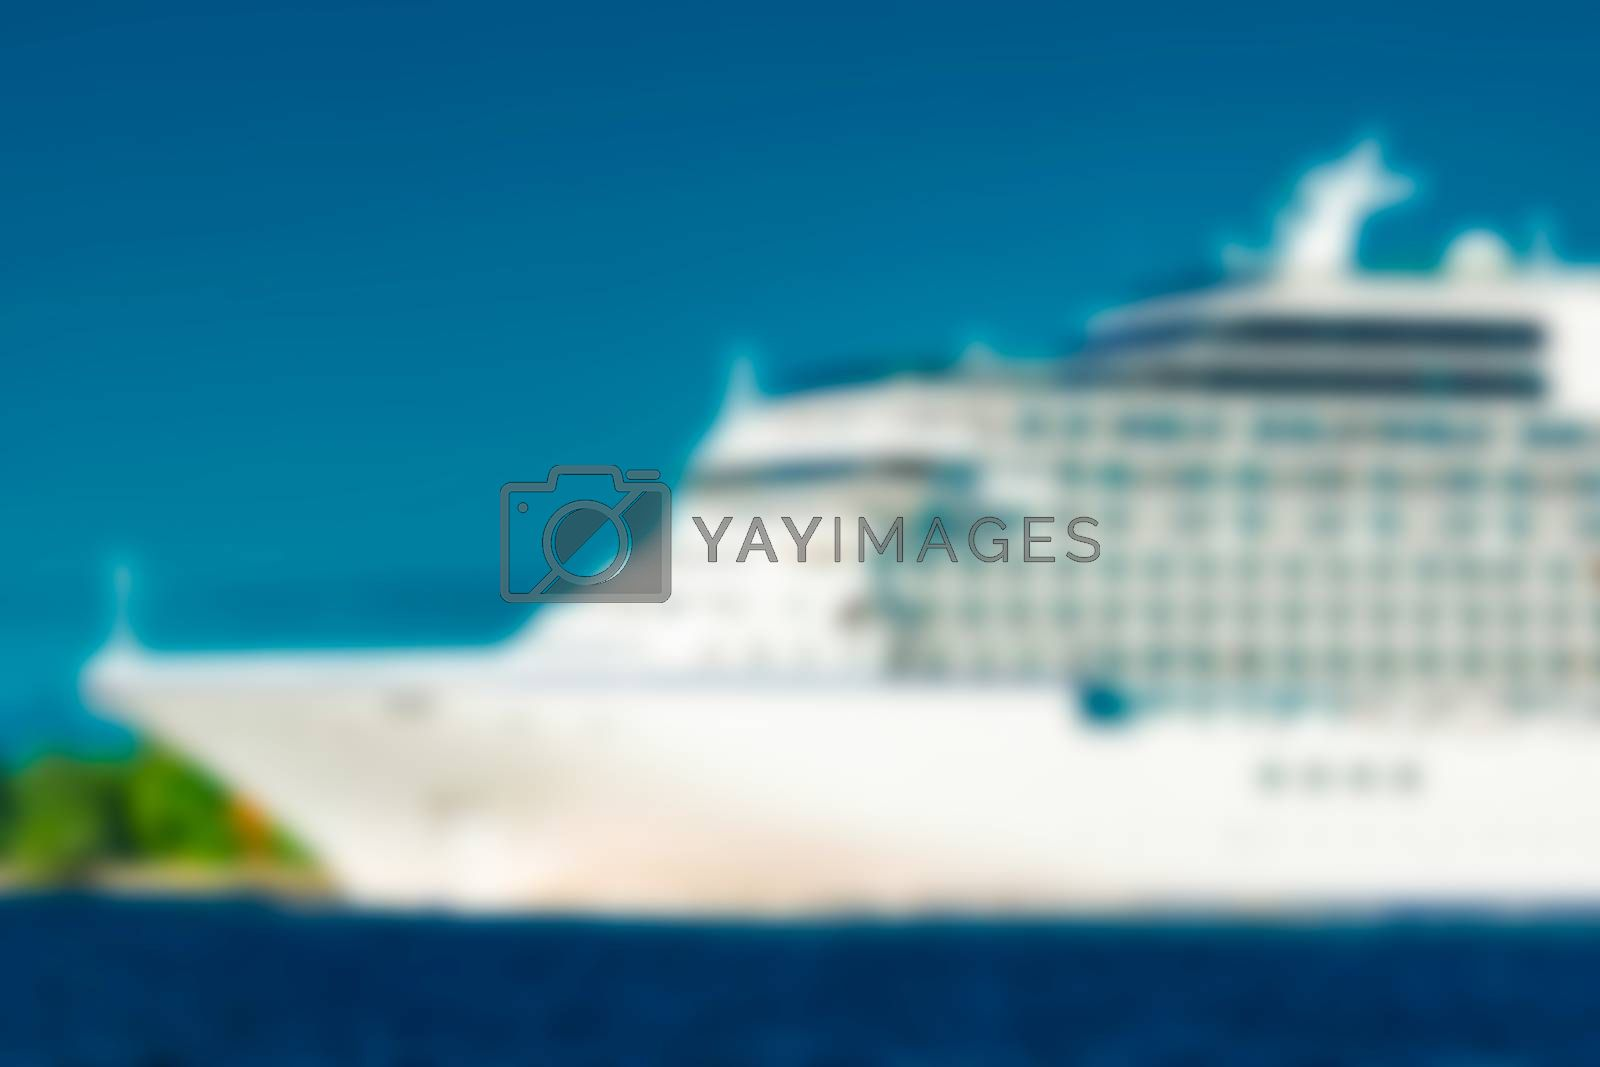 Cruise liner - blurred image by sengnsp